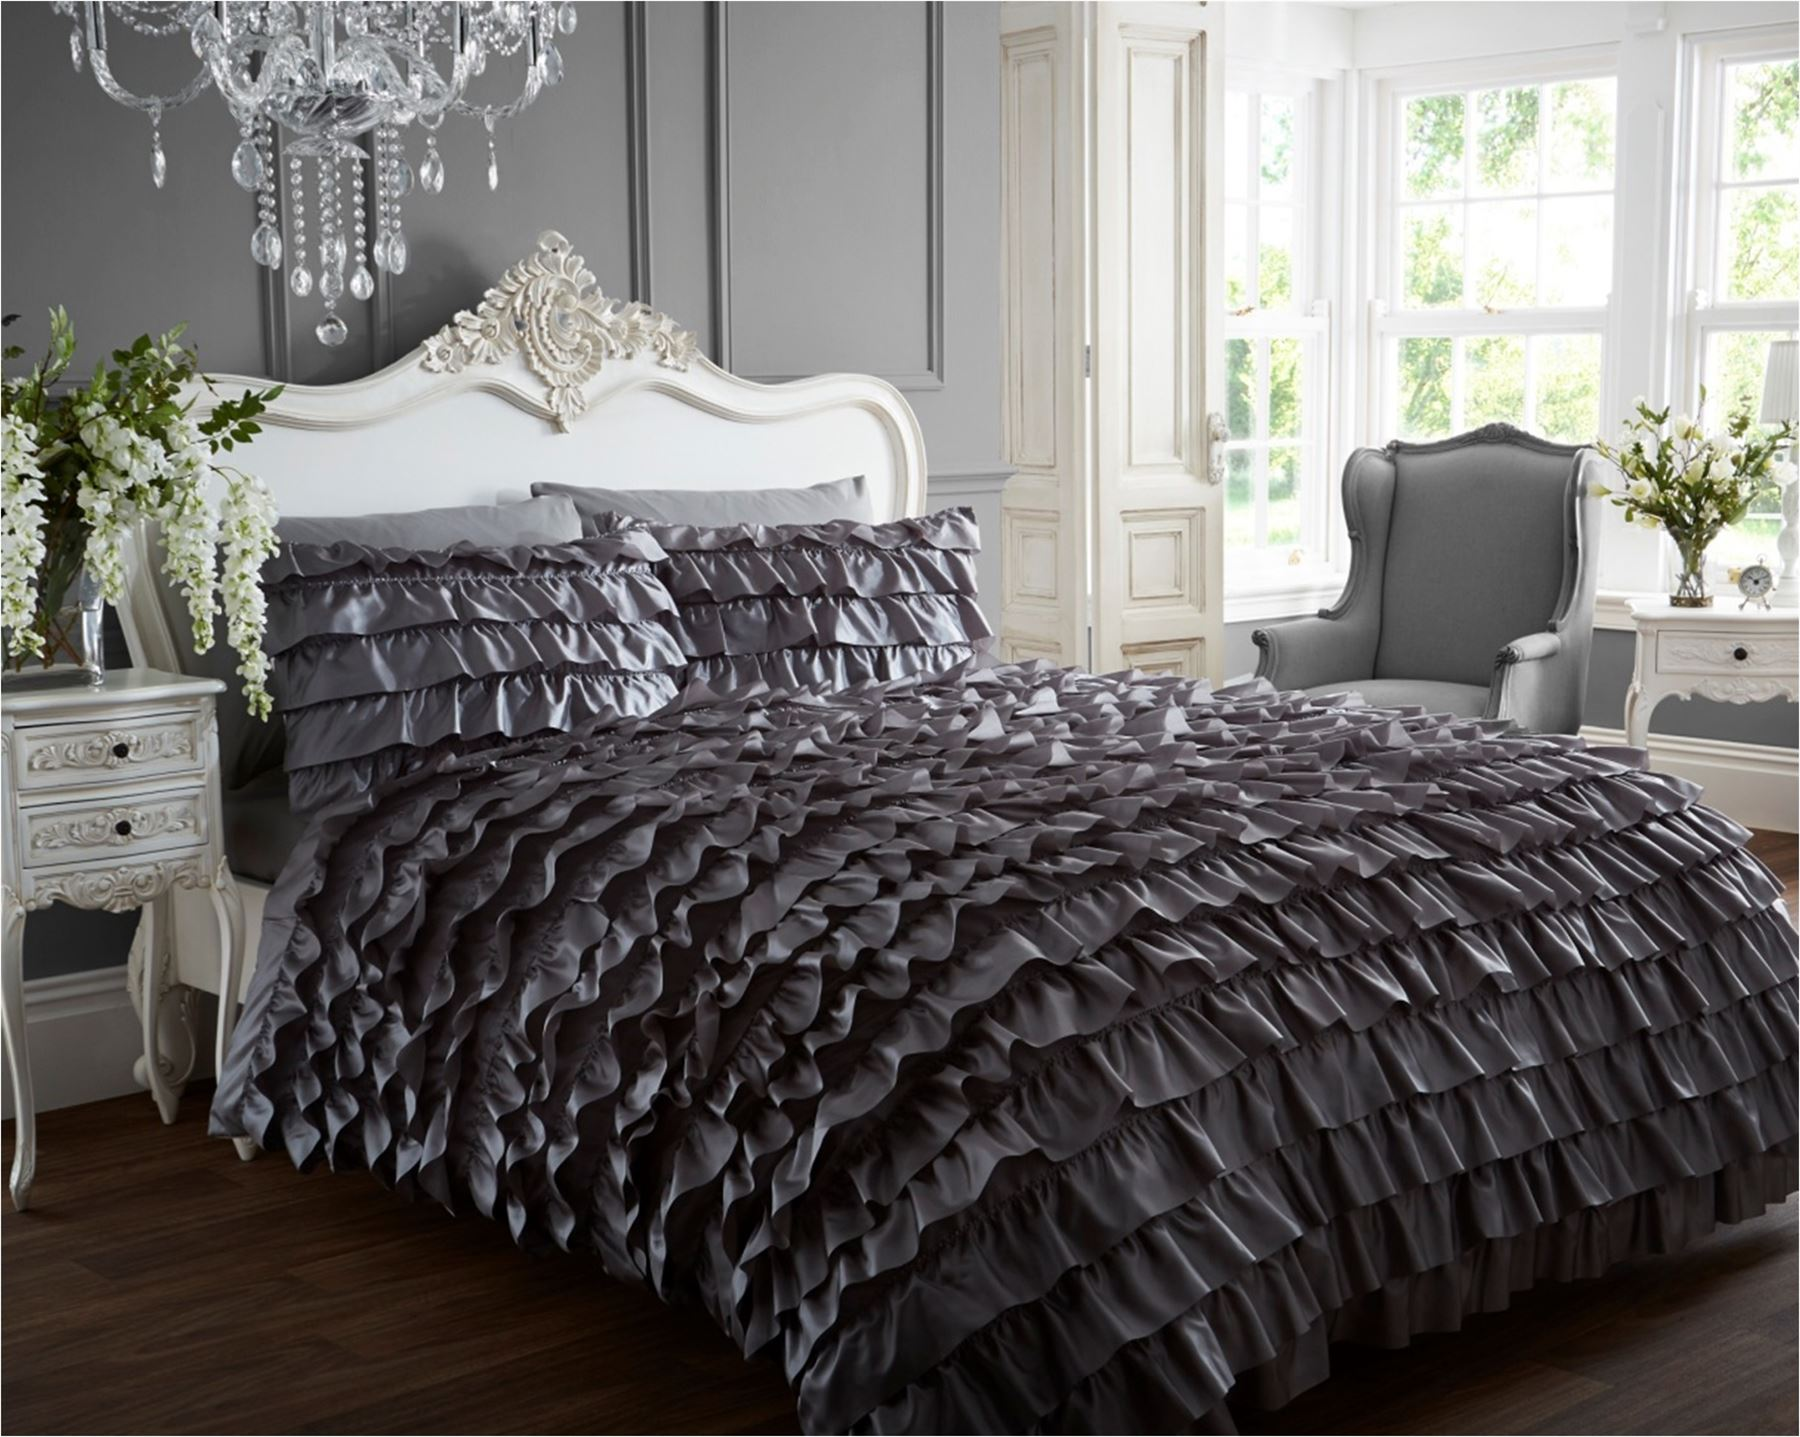 flamenco dress can can quilt duvet cover p case bedding. Black Bedroom Furniture Sets. Home Design Ideas